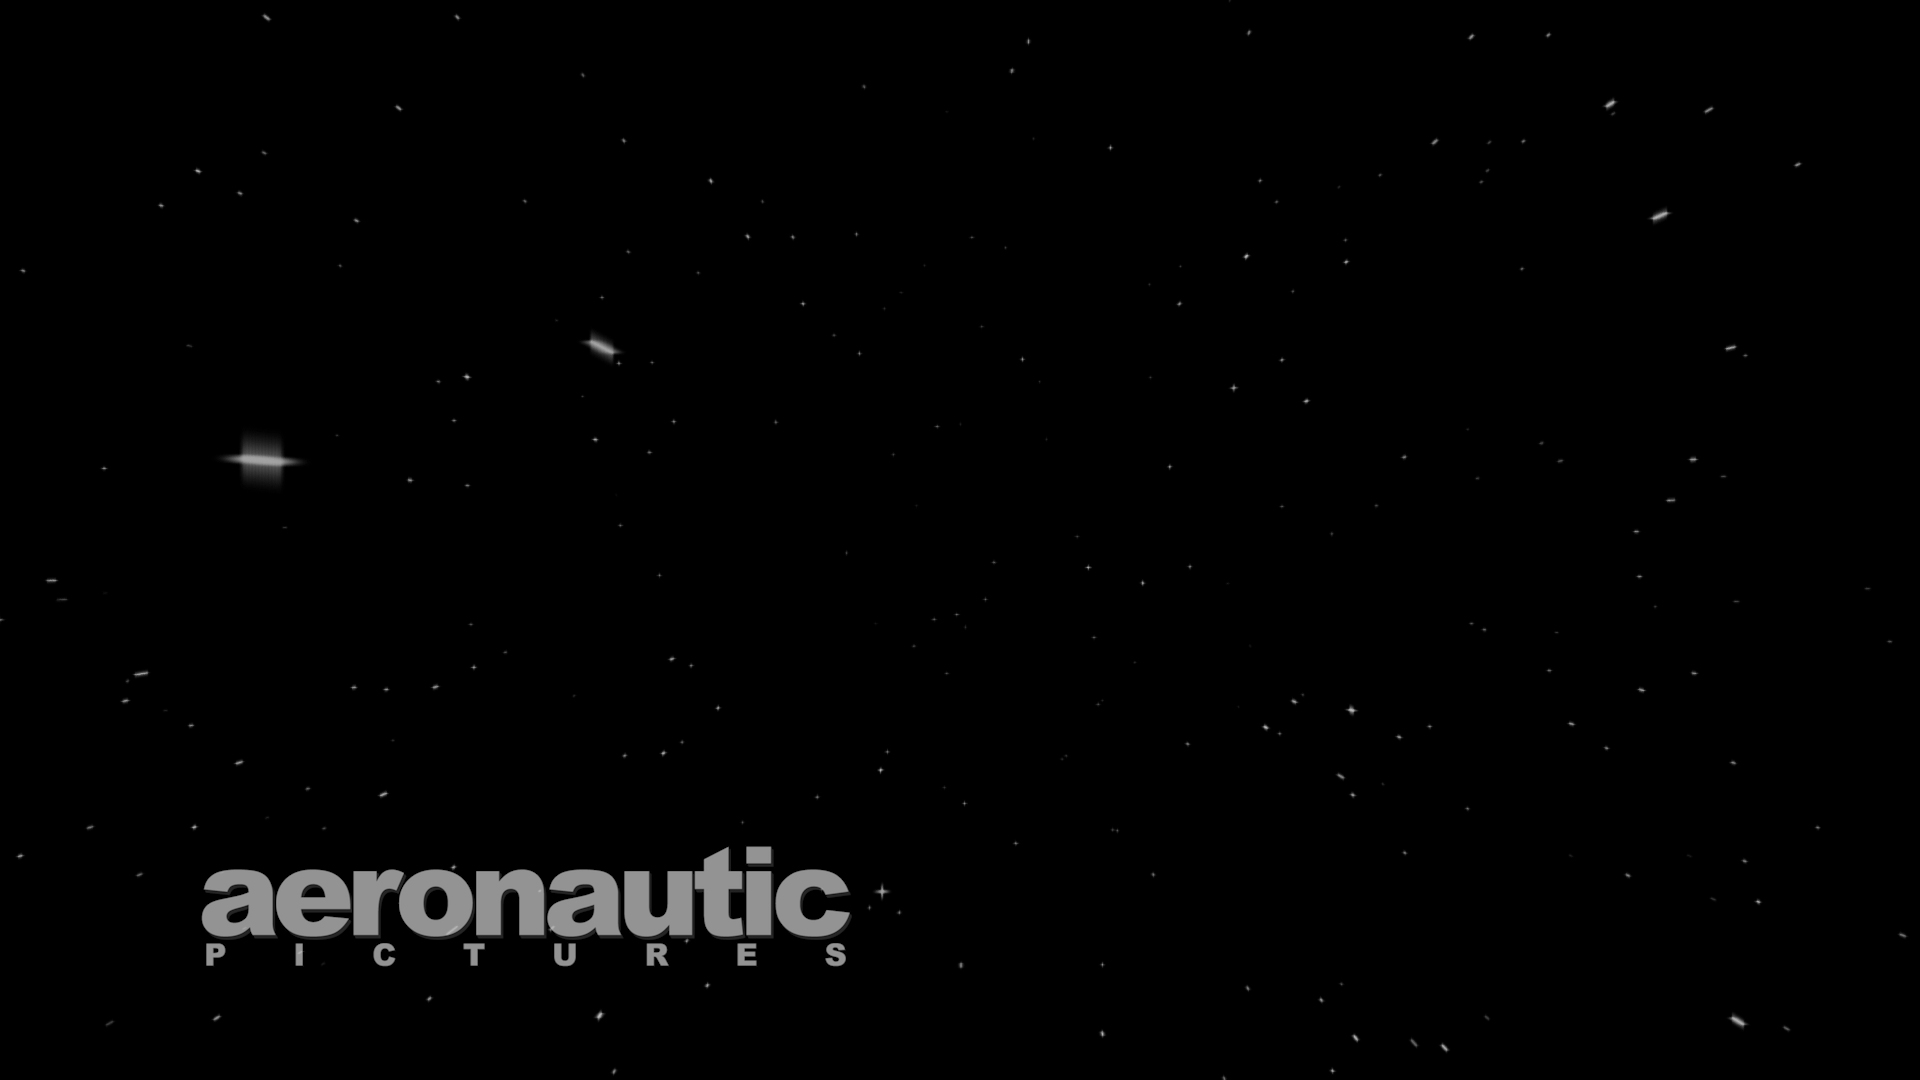 Space Flying Through Stars HD Royalty Free Stock Footage